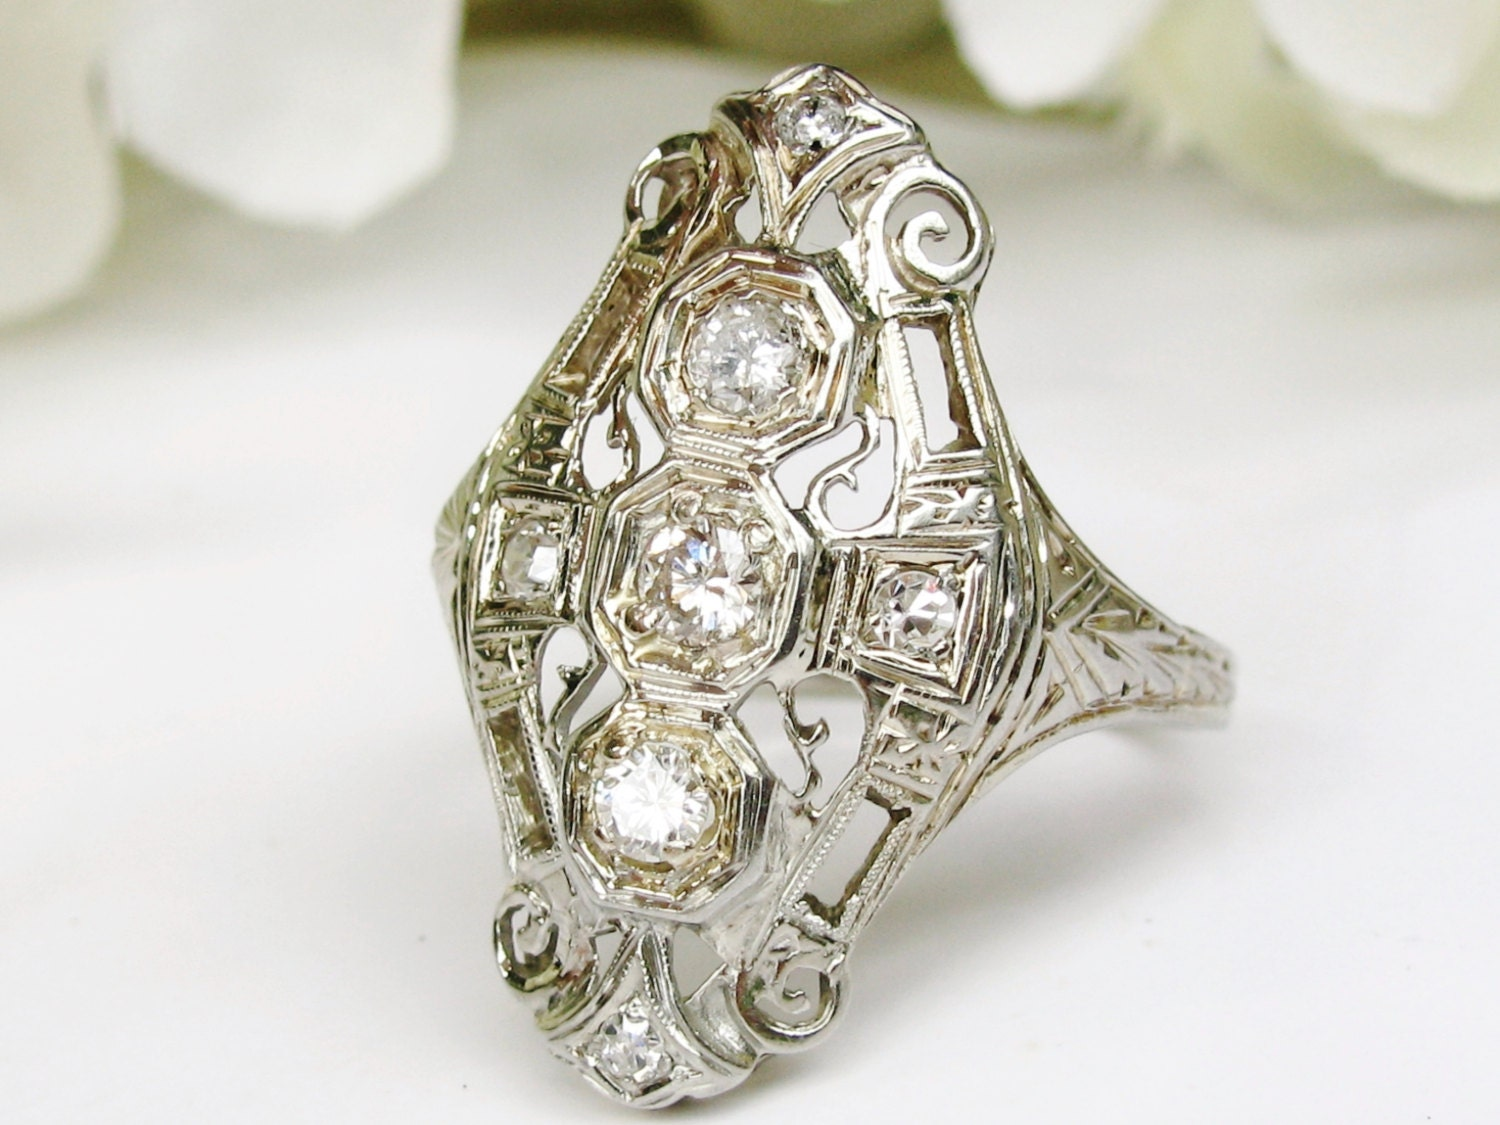 Antique Art Deco Engagement Ring 18K White Gold Filigree